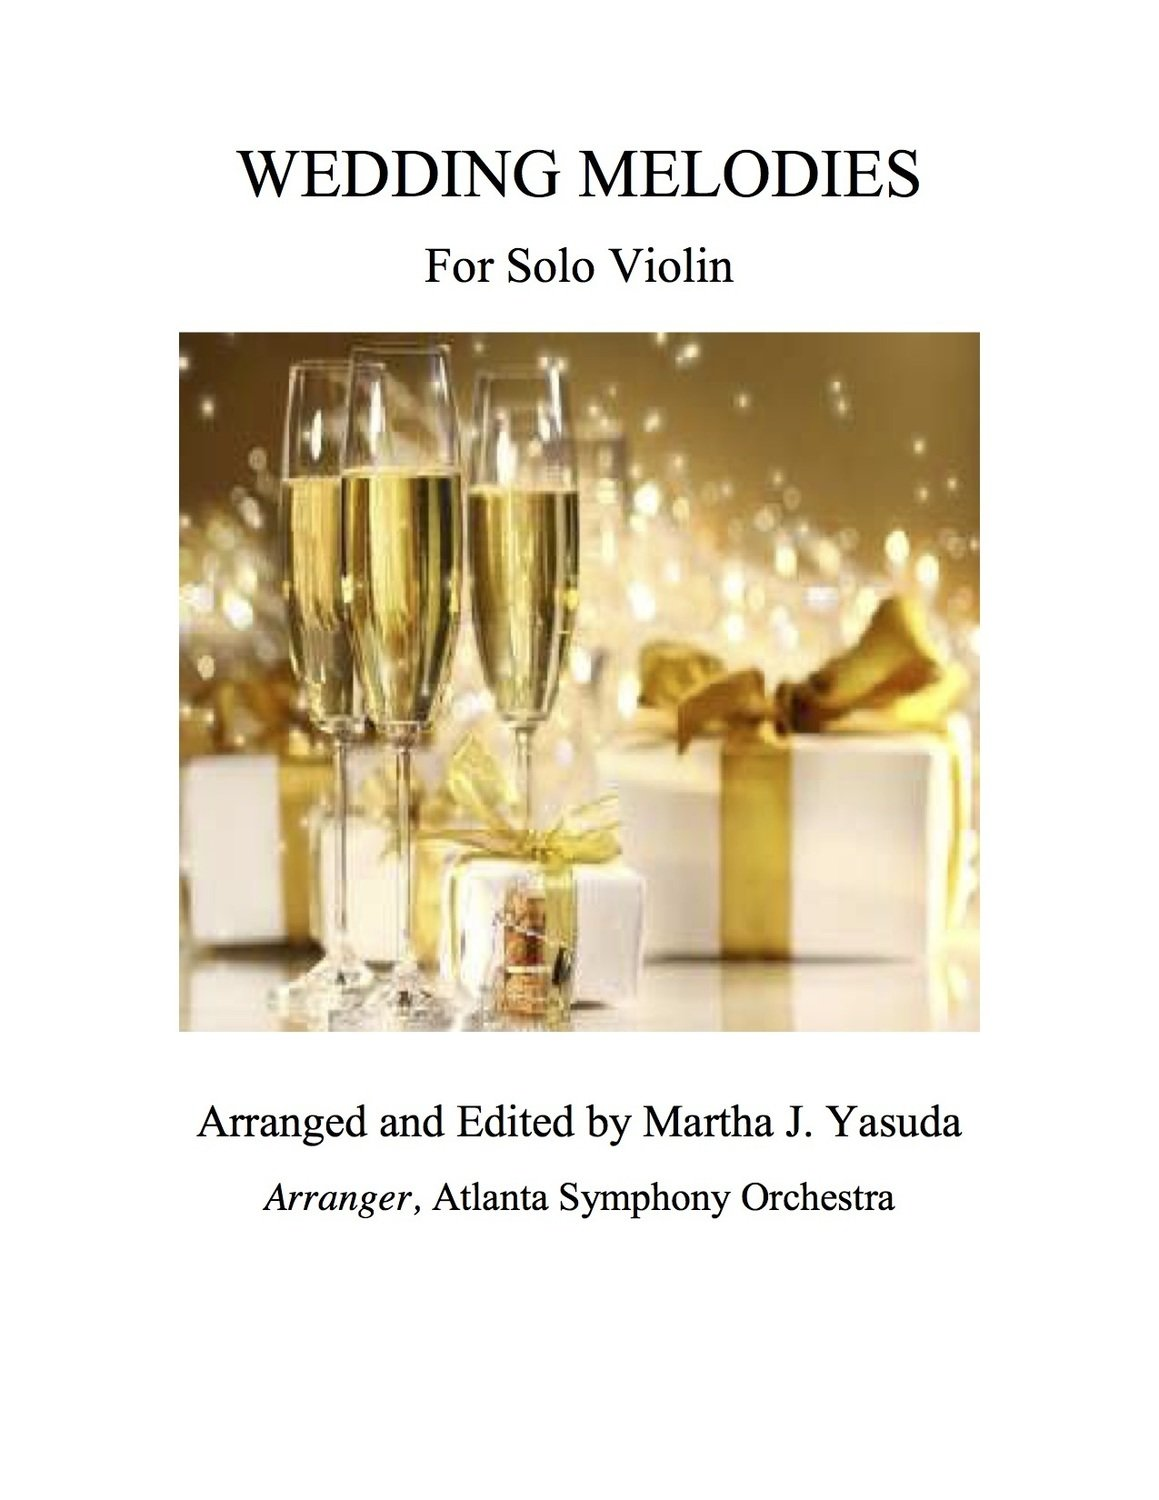 052 - Wedding Melodies For Solo Violin